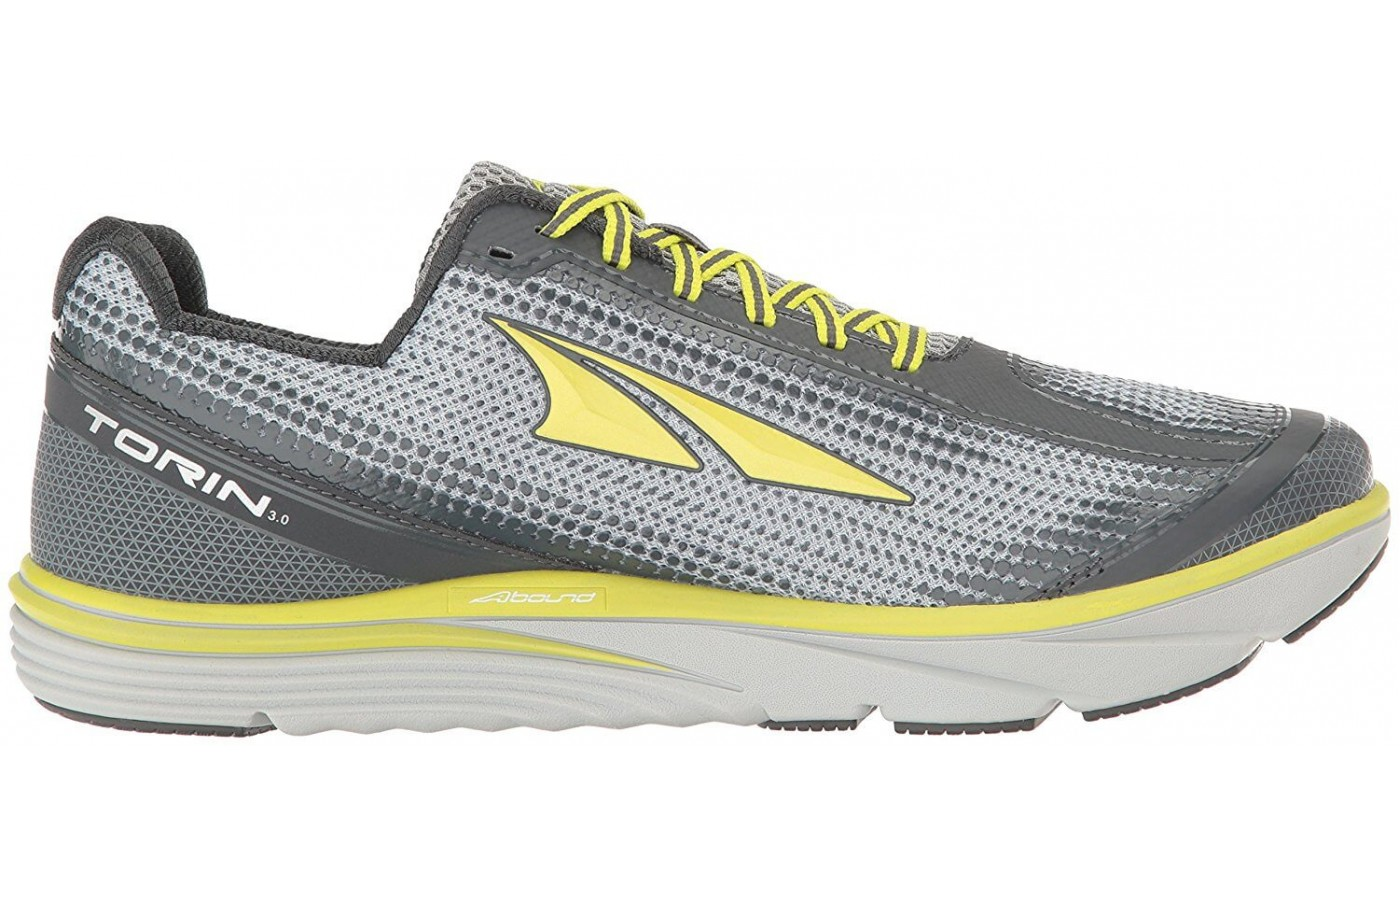 The Altra Torin 3.0 features a zero-drop design